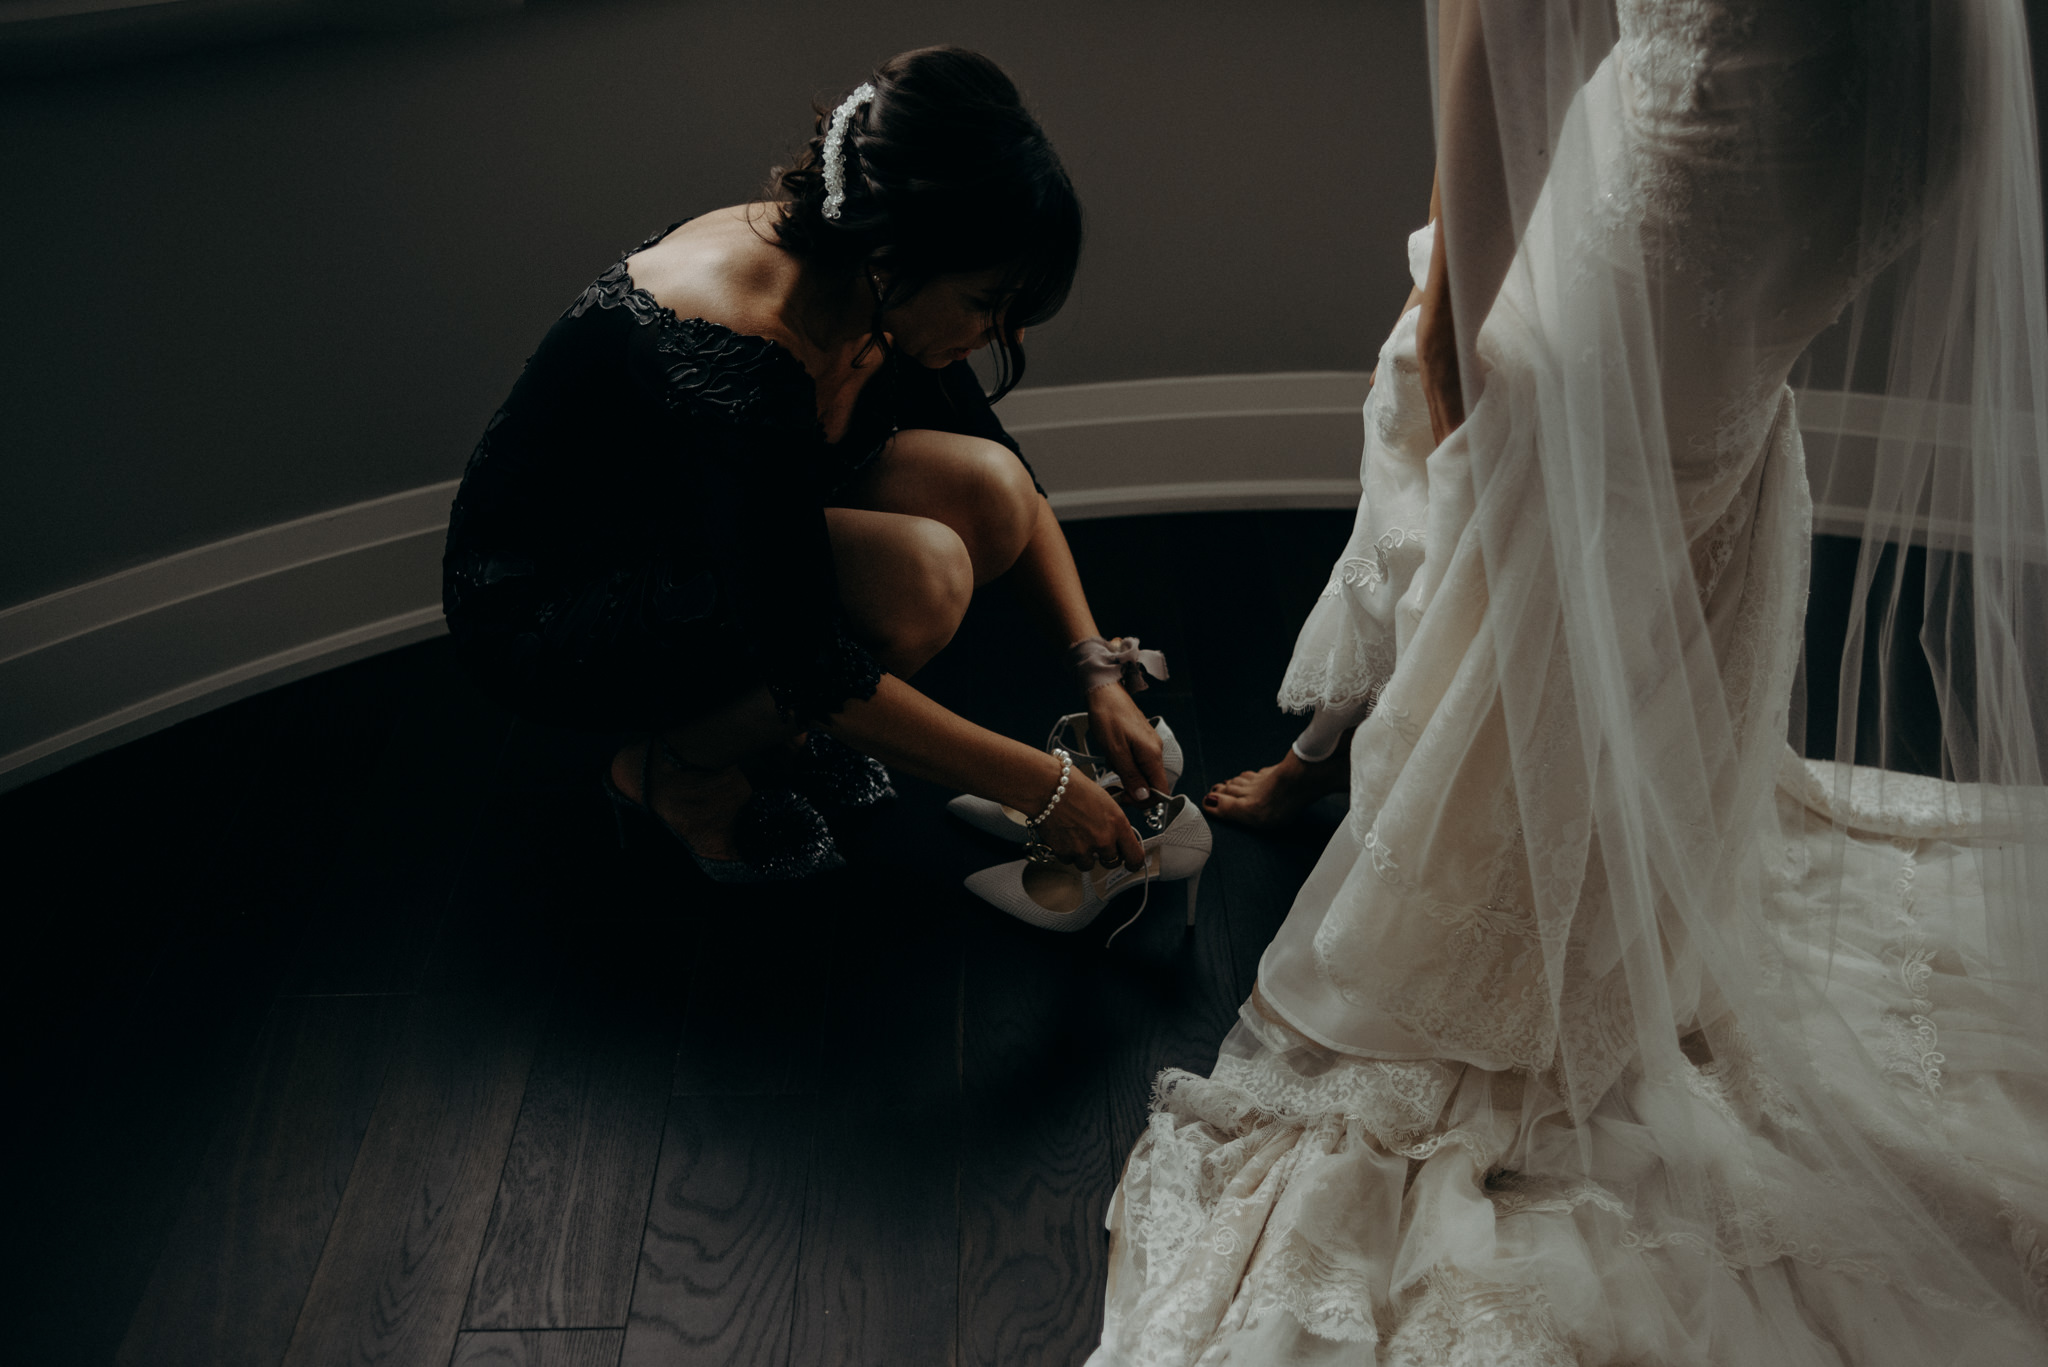 mother of bride putting on shoes for bride